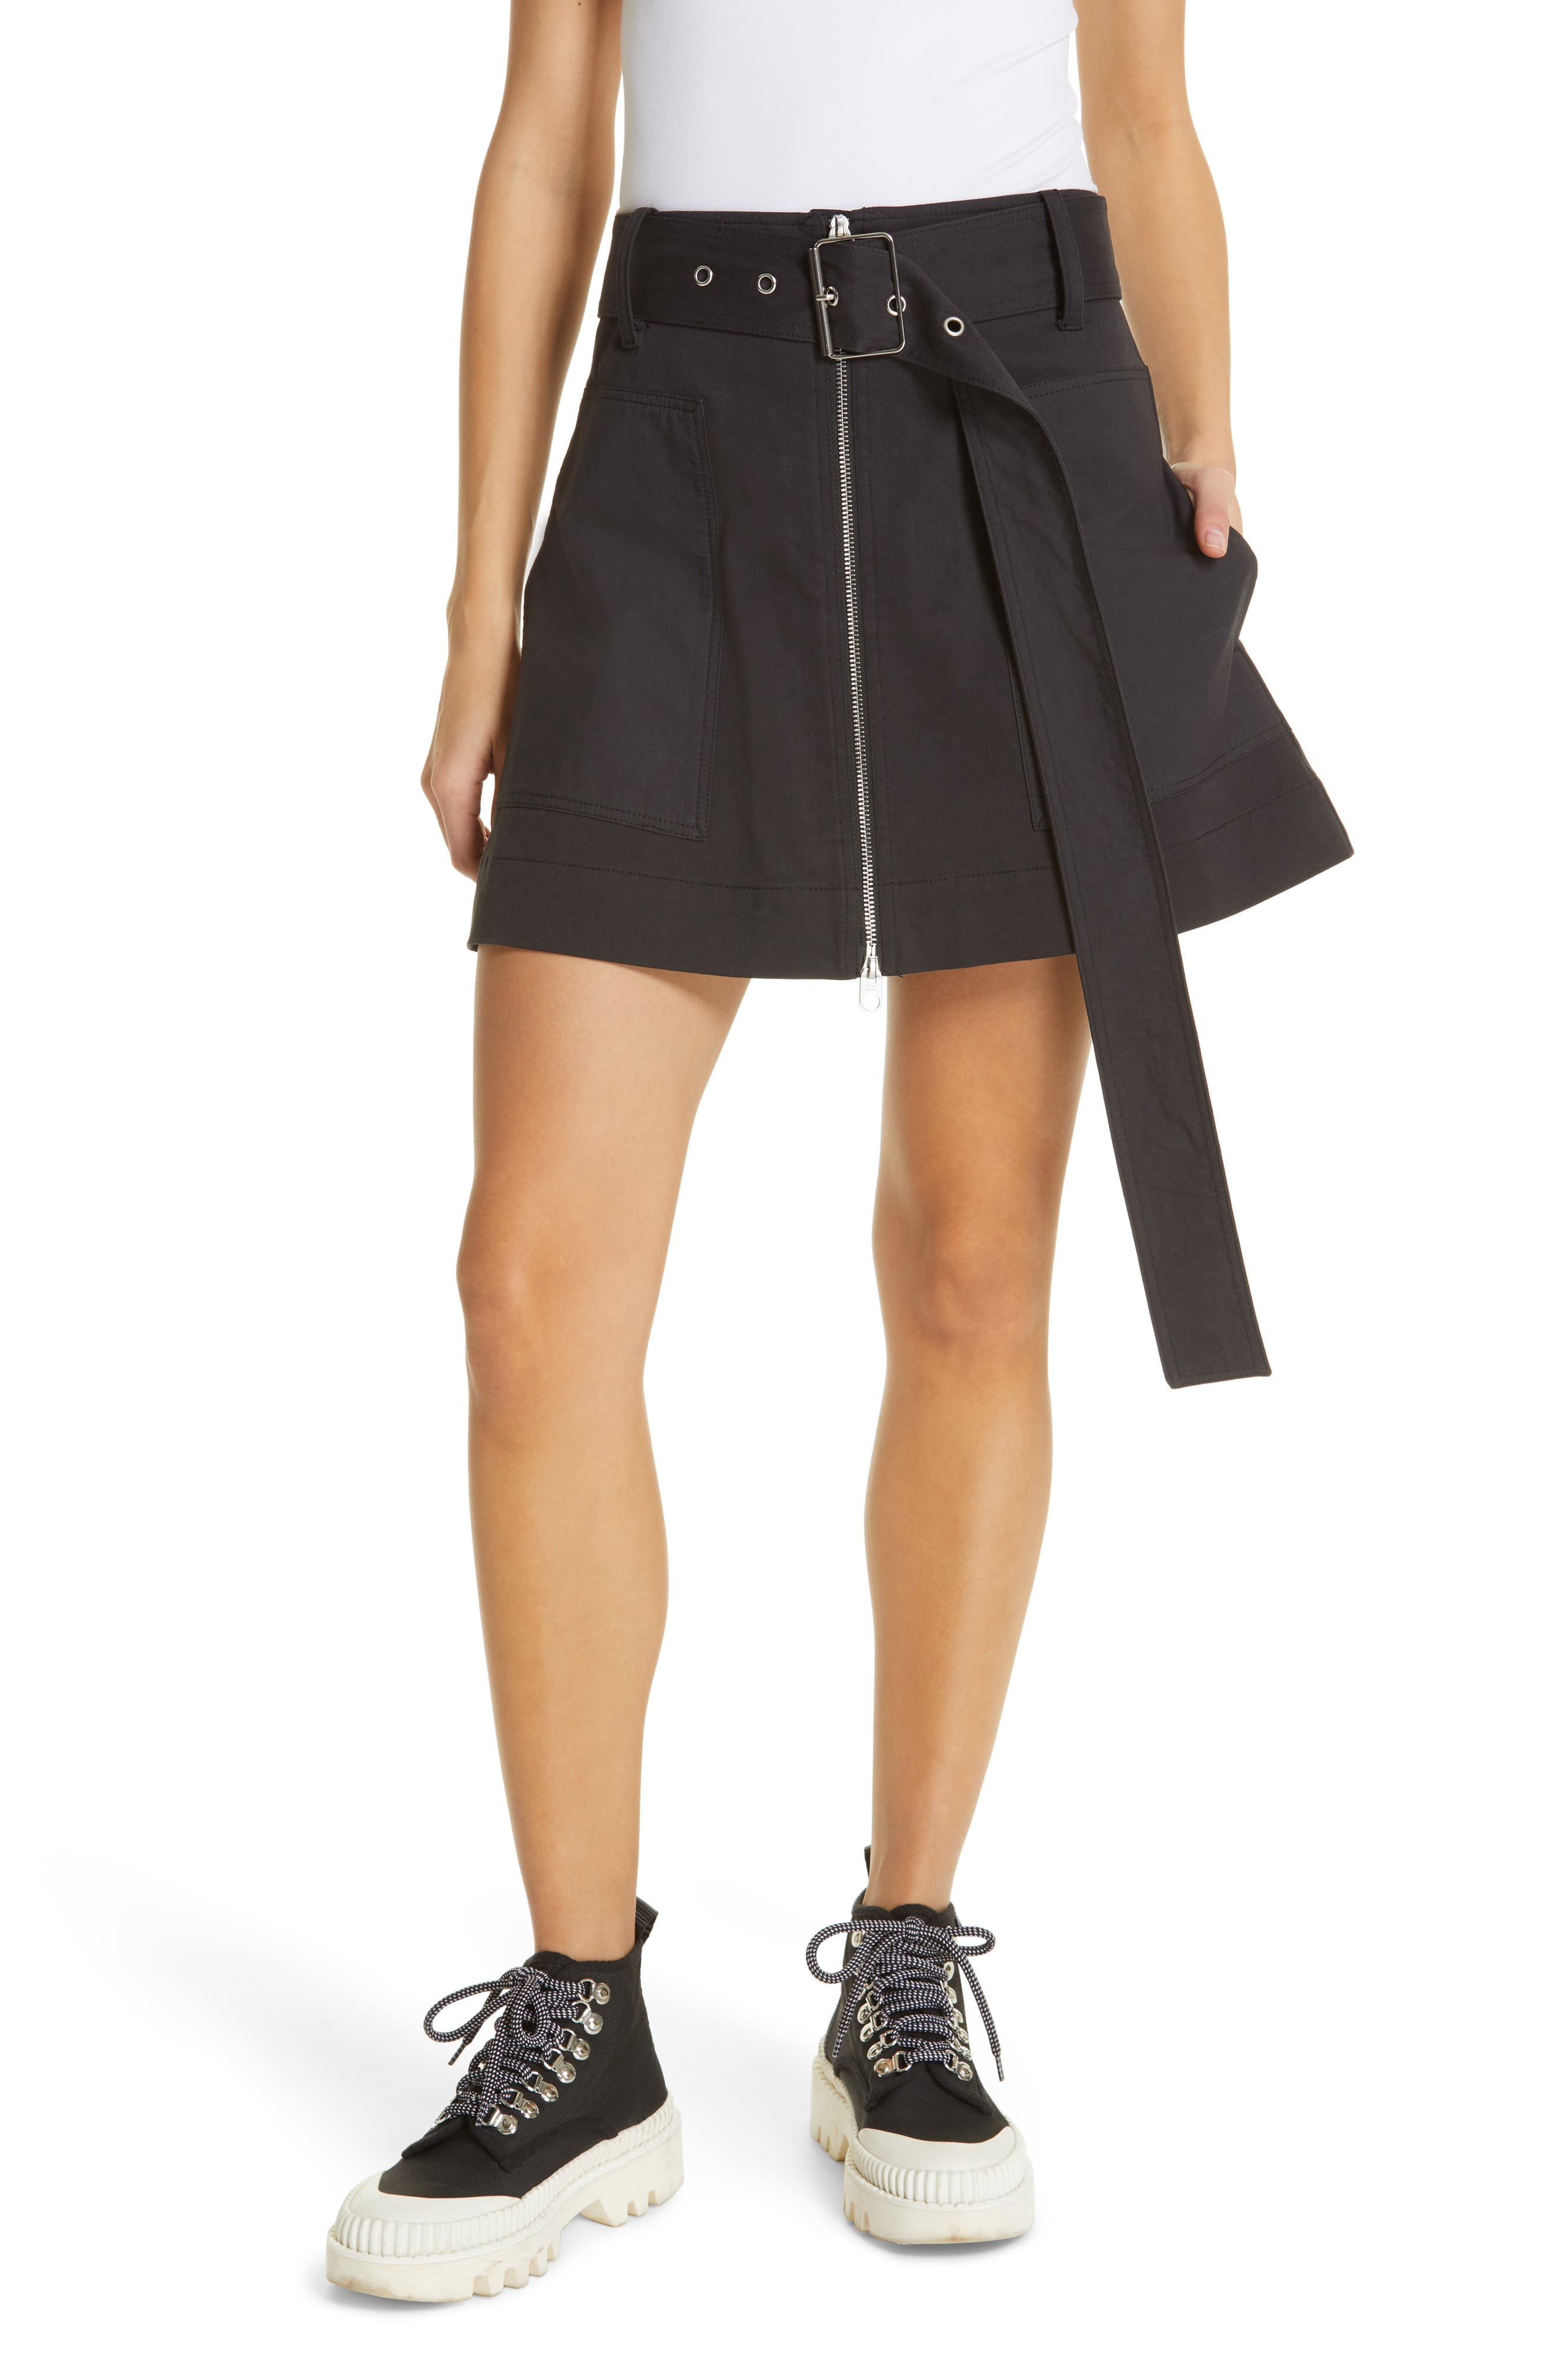 PROENZA SCHOULER, PSWL Belted Utility Skirt, Main thumbnail 1, color, BLACK